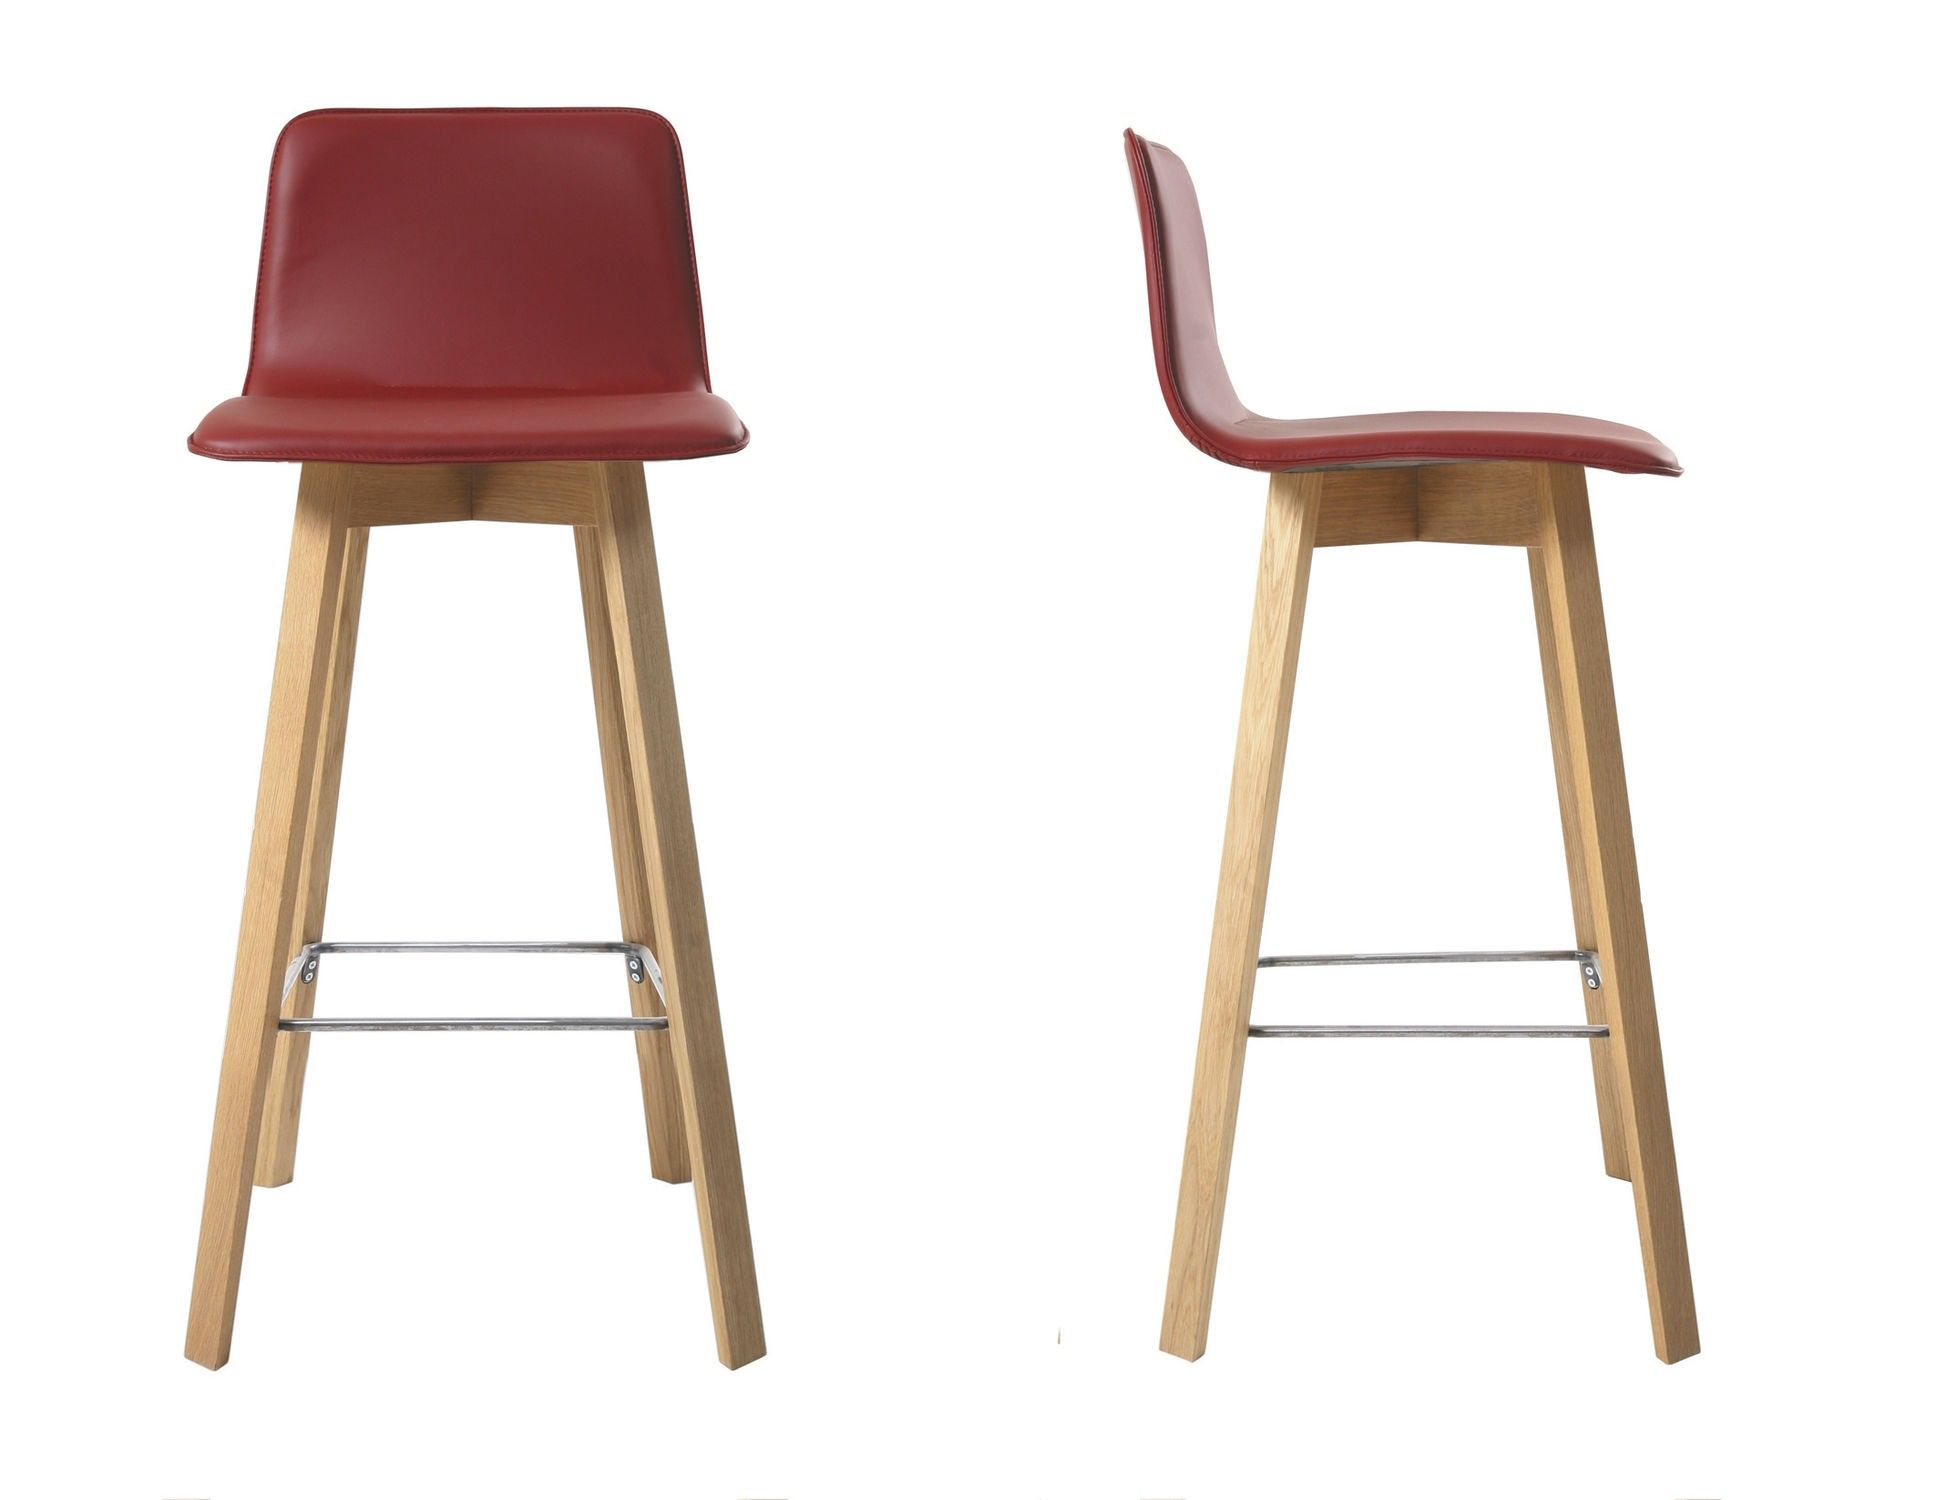 Kitchen Stools With Backs Contemporary Wooden Upholstered Maverick